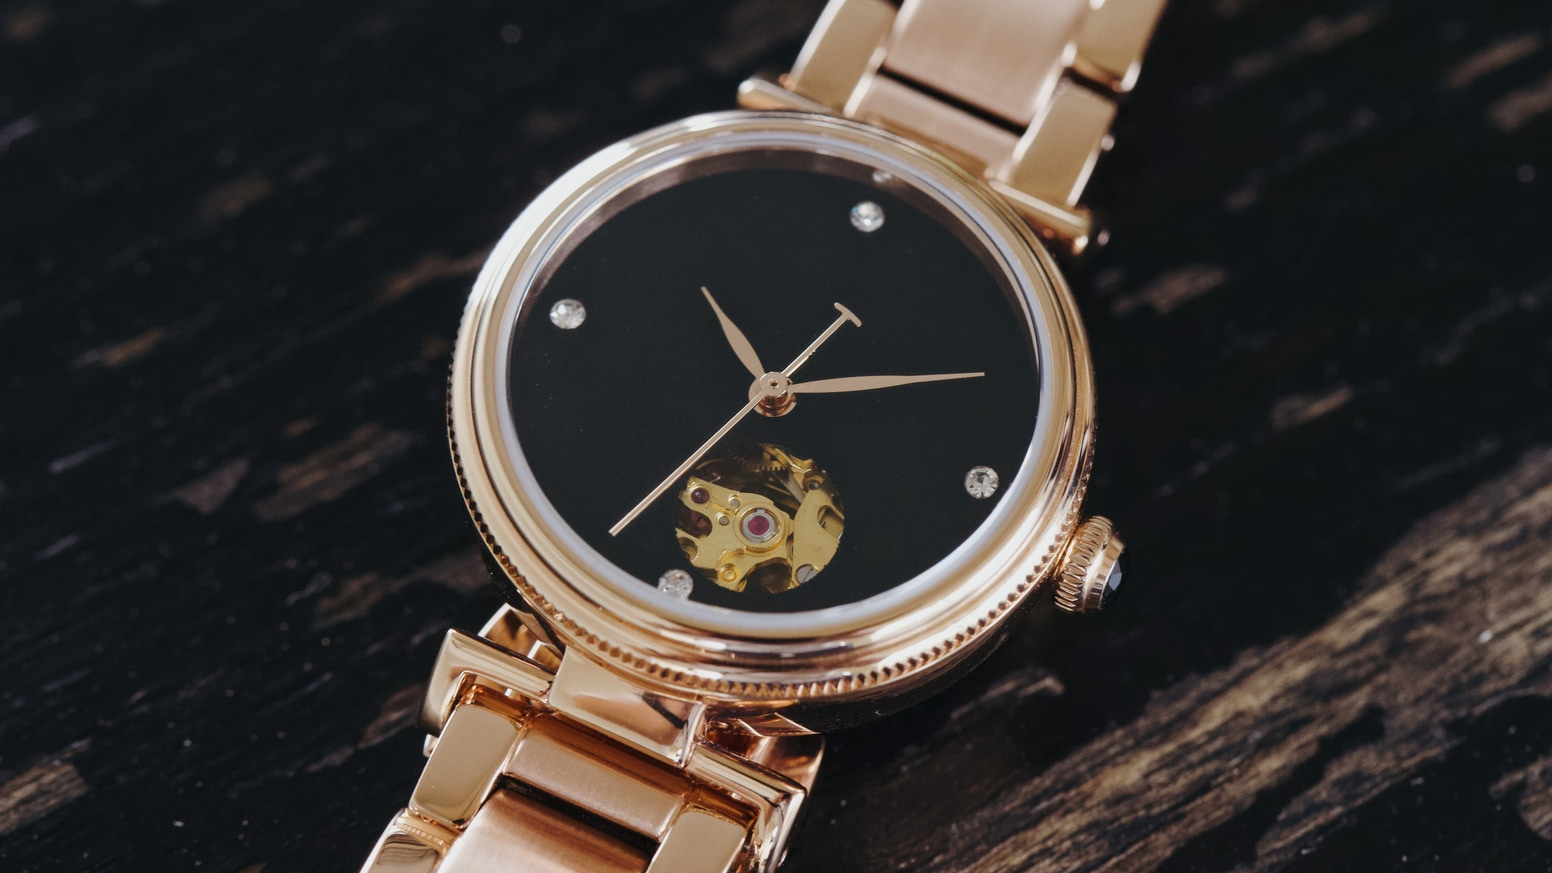 A beautiful timepiece for the modern sophisticated woman.